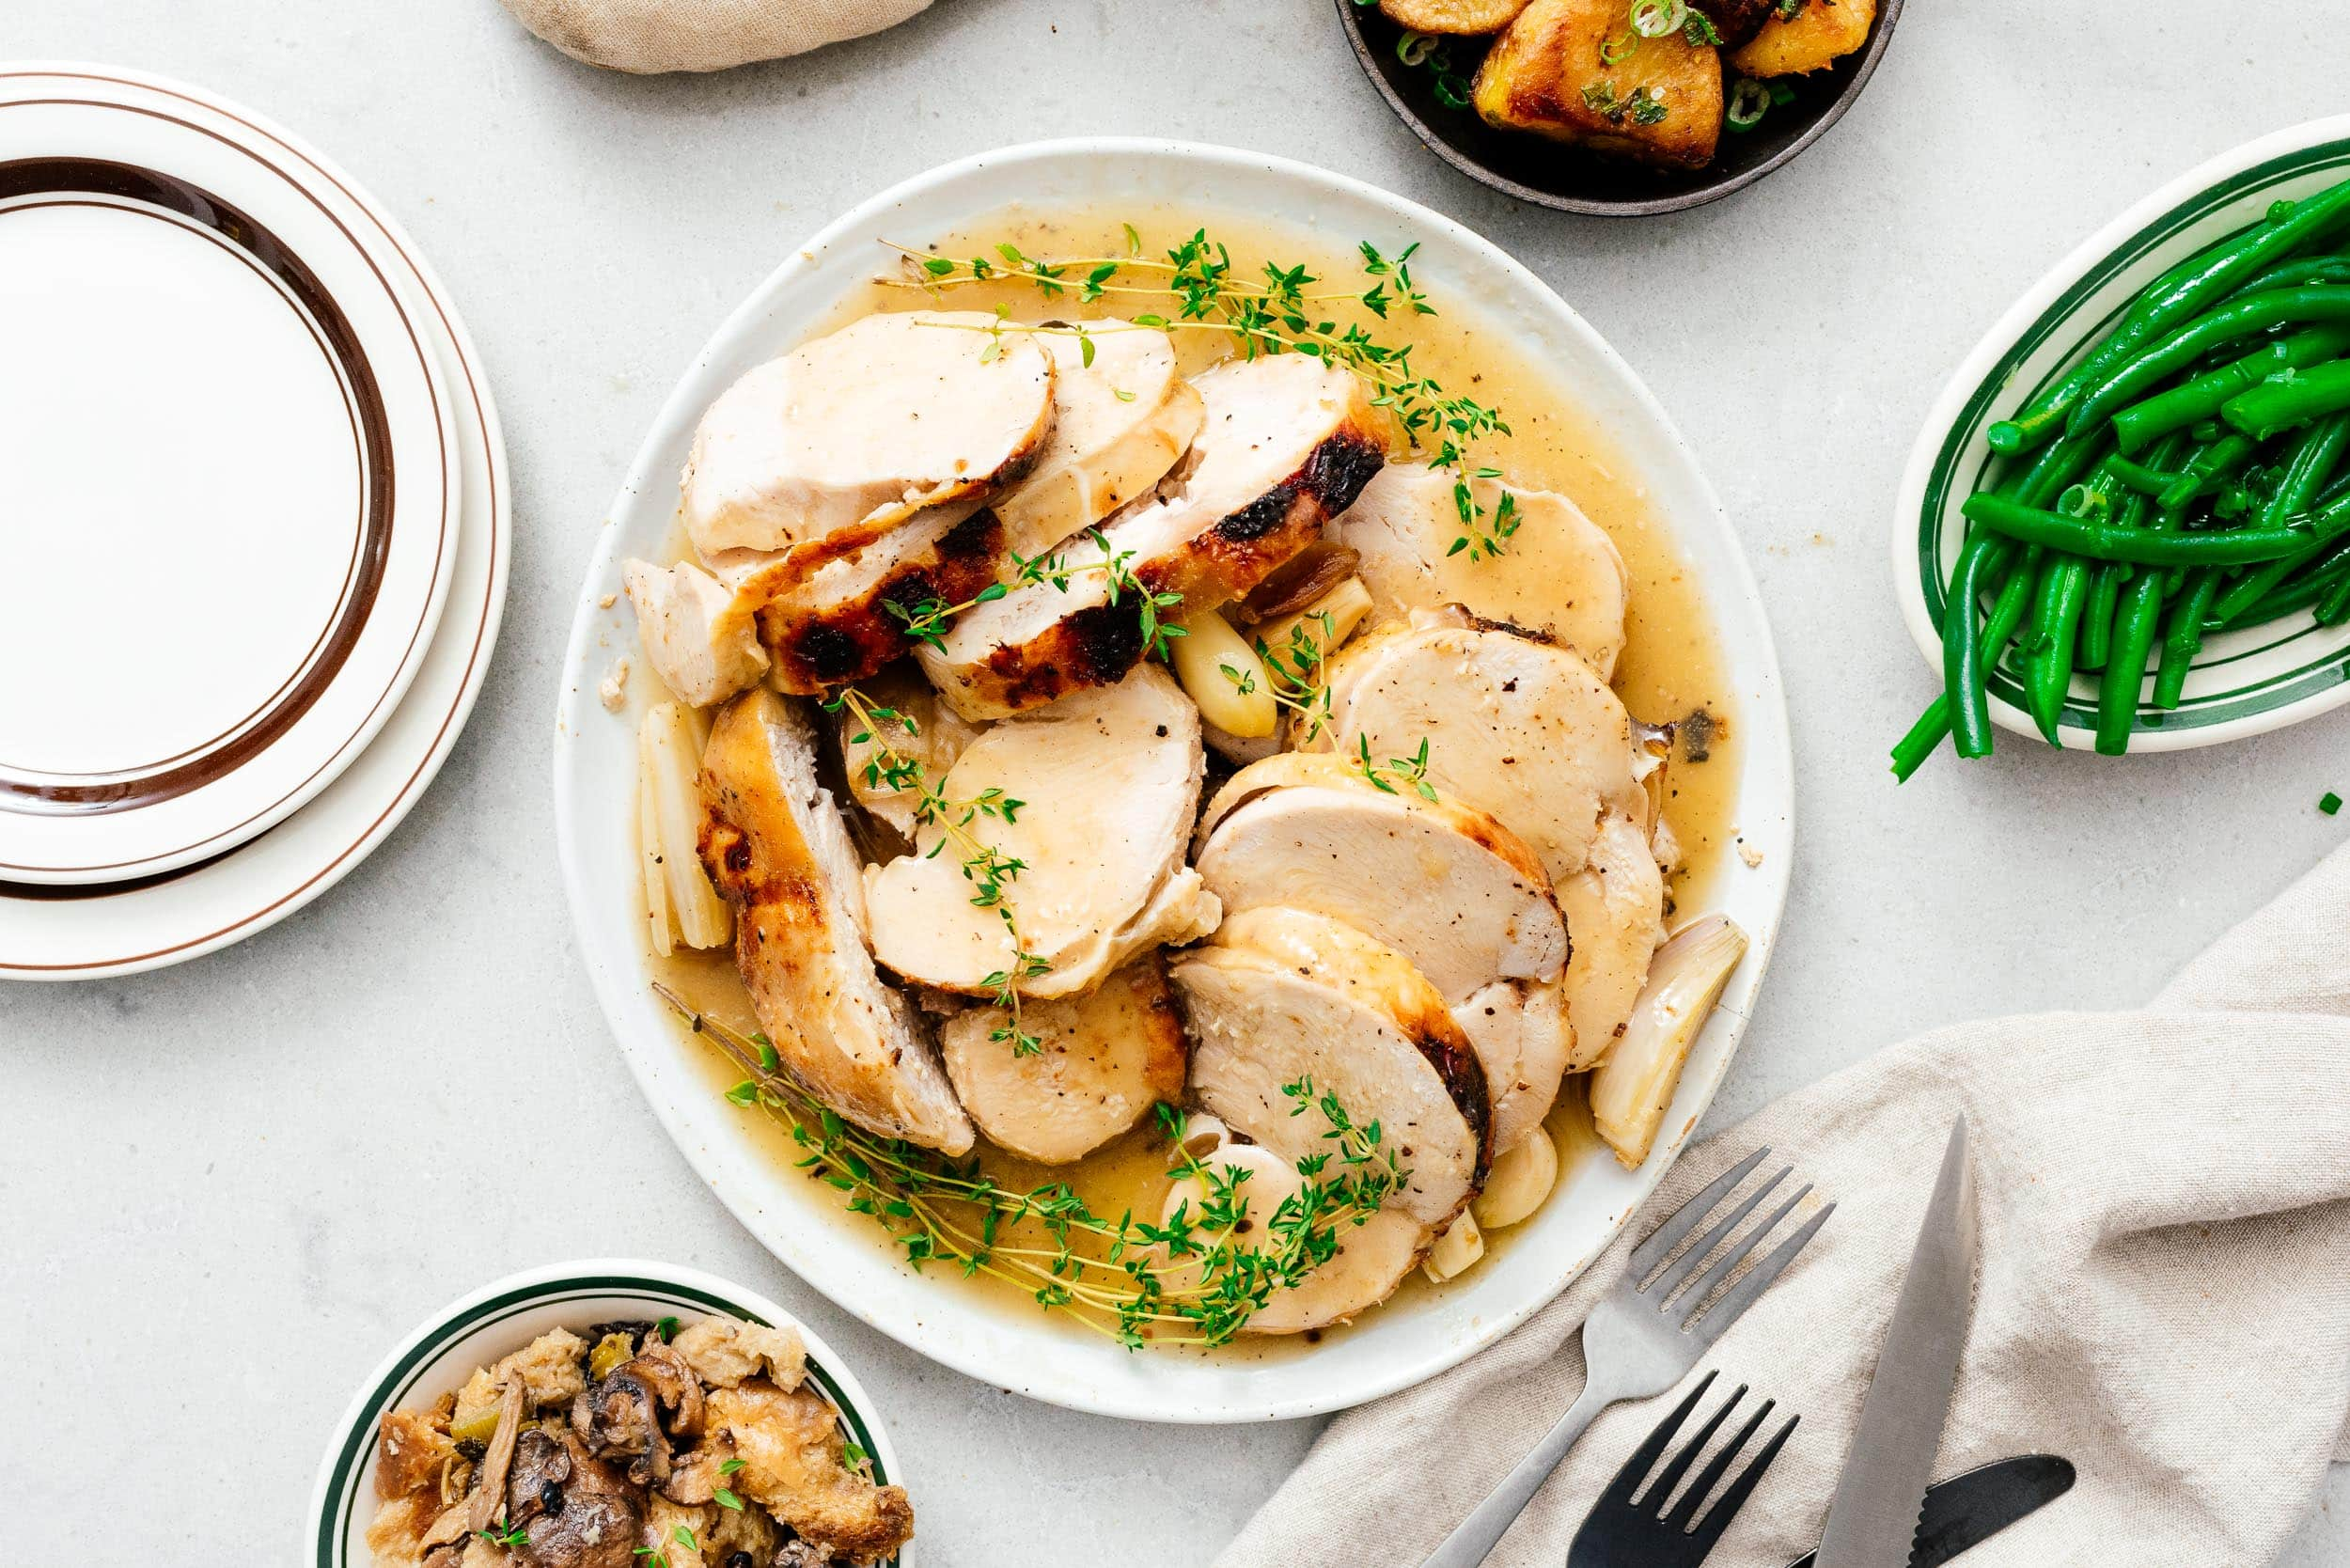 Super Juicy Crock Pot Turkey Breast | www.iamafoodblog.com